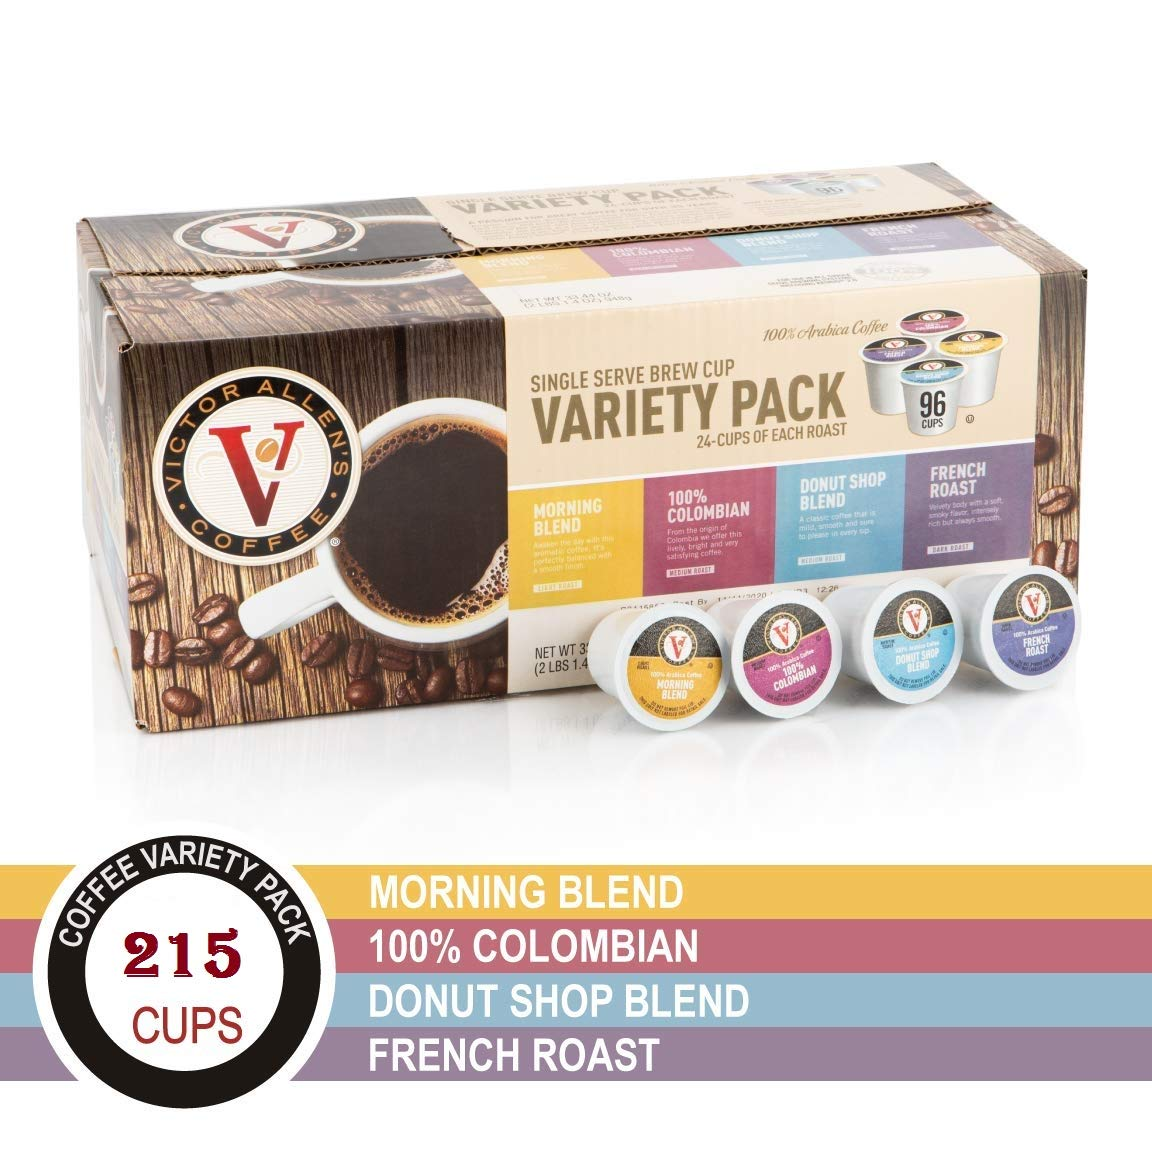 Donut Shop, Morning Blend, 100% Colombian, and French Roast Variety Pack for K-Cup, Keurig 2.0 Brewers, 215 Count Victor Allen's Coffee Single Serve Coffee Pods (215 Count)